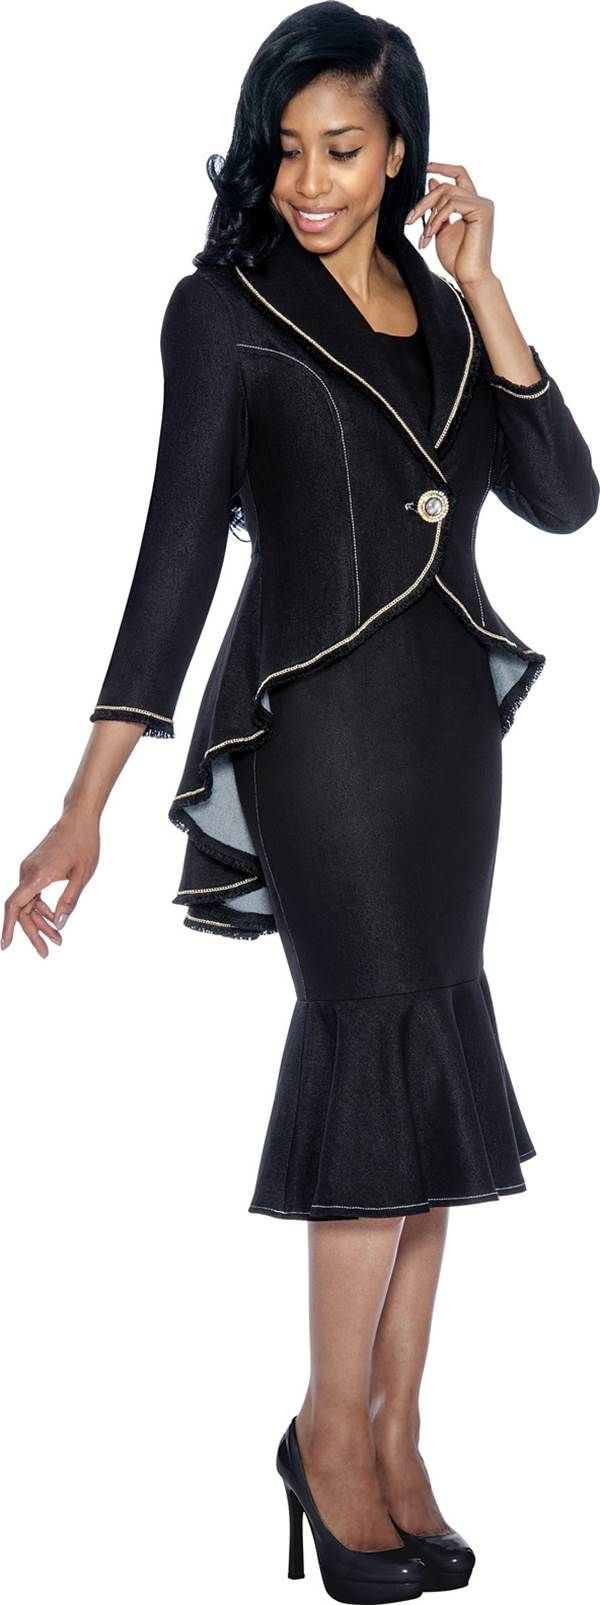 Innovative Womens Church Suits  First Lady Suits  Pinterest  The Bride Suits